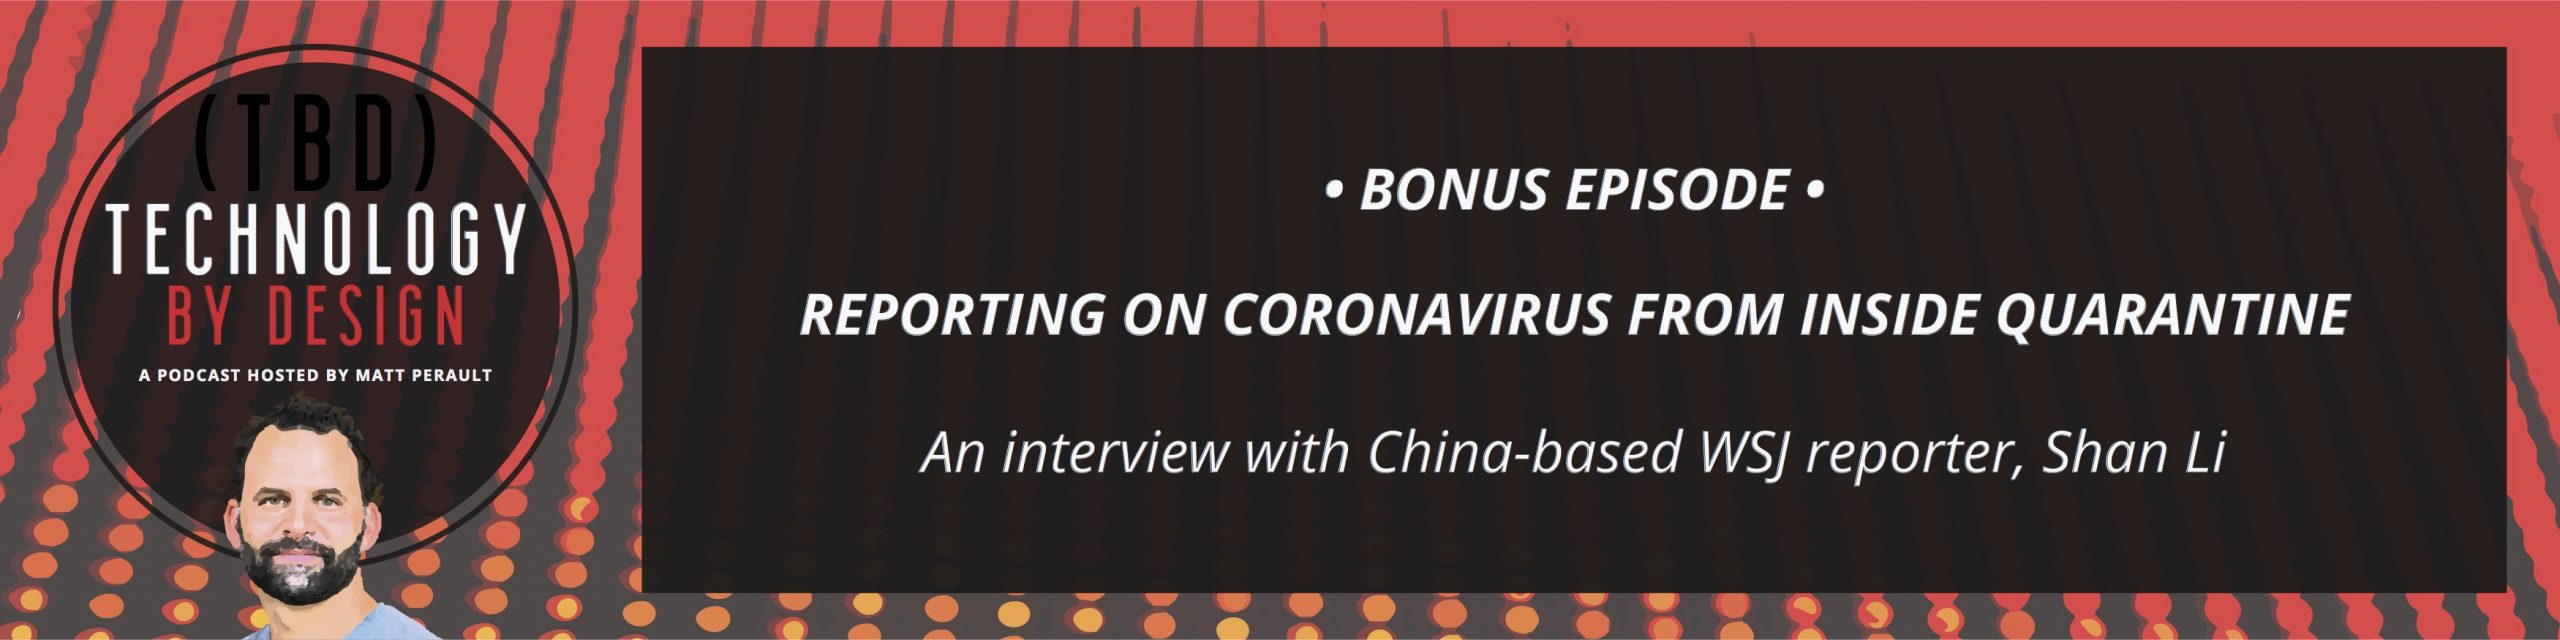 Bonus Episode of Technology By Design: Reporting on Coronavirus from Inside Quarantine; an interview with China-based WSJ reporter, Shan Li.